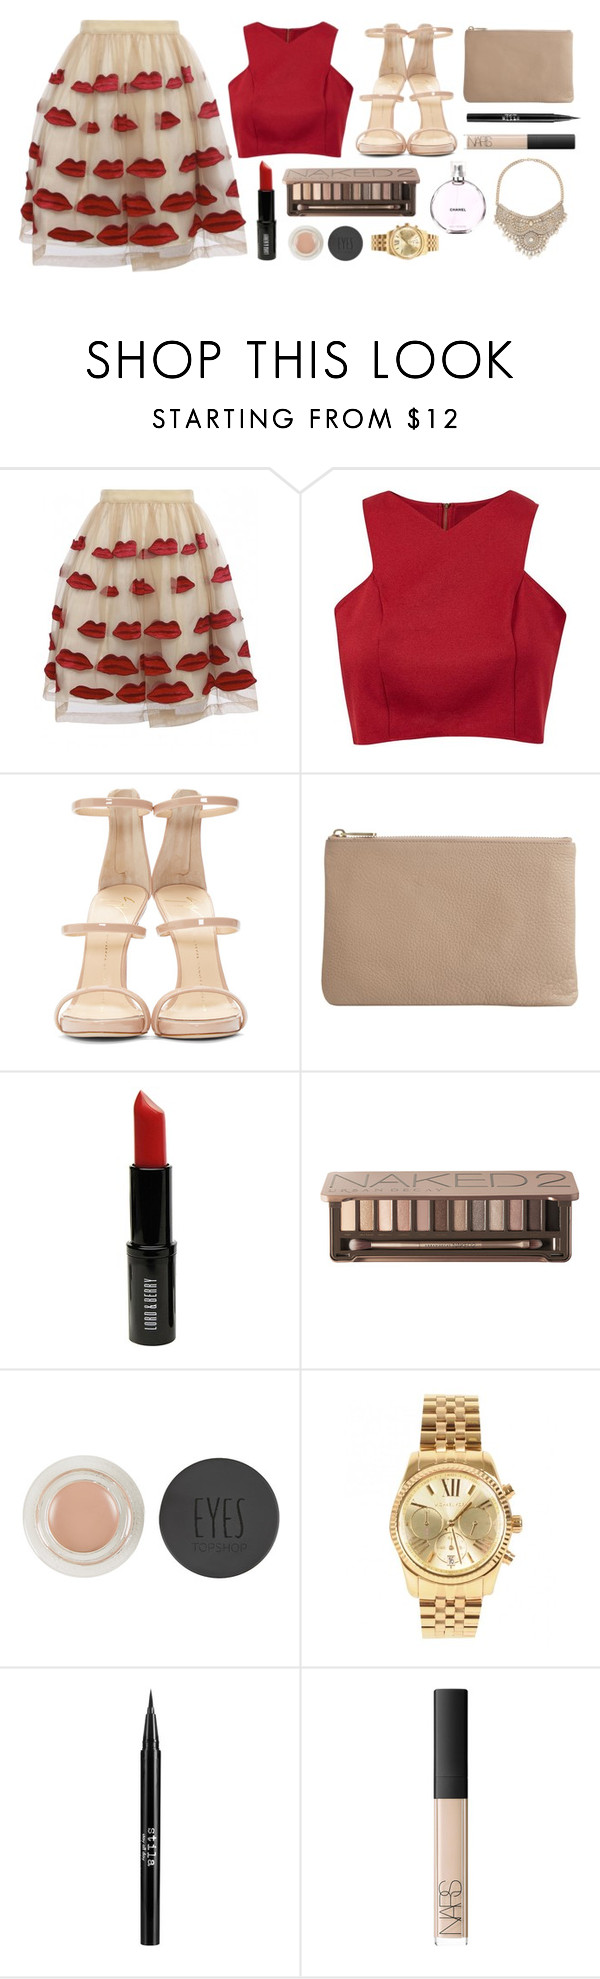 """""""O is for the only one I see."""" by andreavc ❤ liked on Polyvore featuring Alice + Olivia, Cameo Rose, Giuseppe Zanotti, Wittner, Lord & Berry, Urban Decay, Topshop, Chanel, Michael Kors and Stila"""